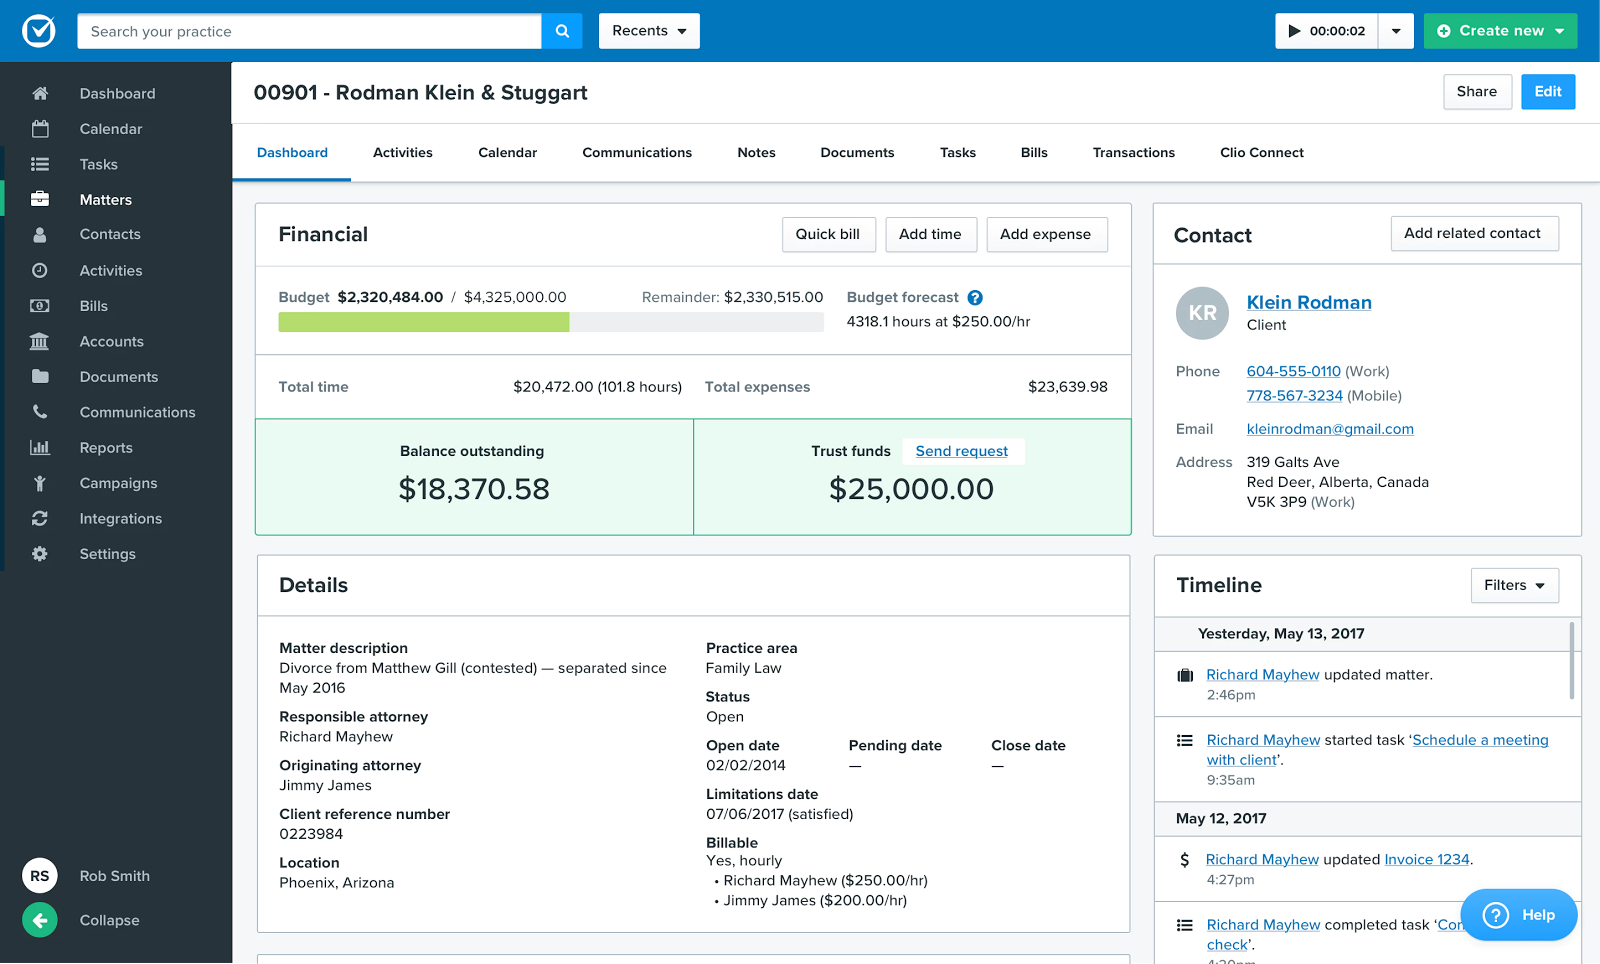 30 Top Rated Accounting Software Apps for Independent Contractors